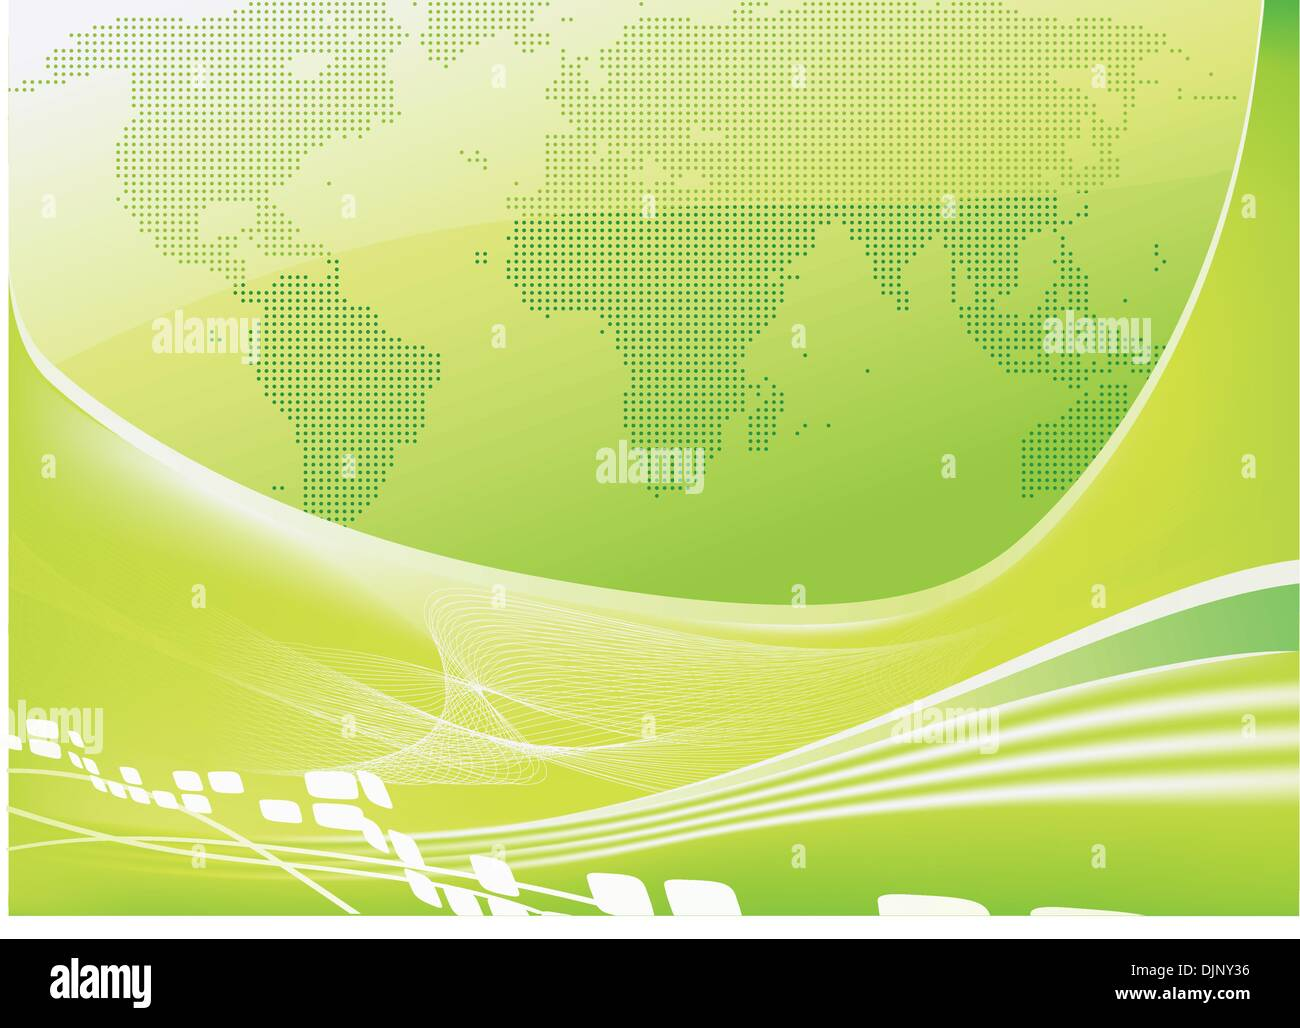 Vector illustration of stylised green world map background - Stock Vector